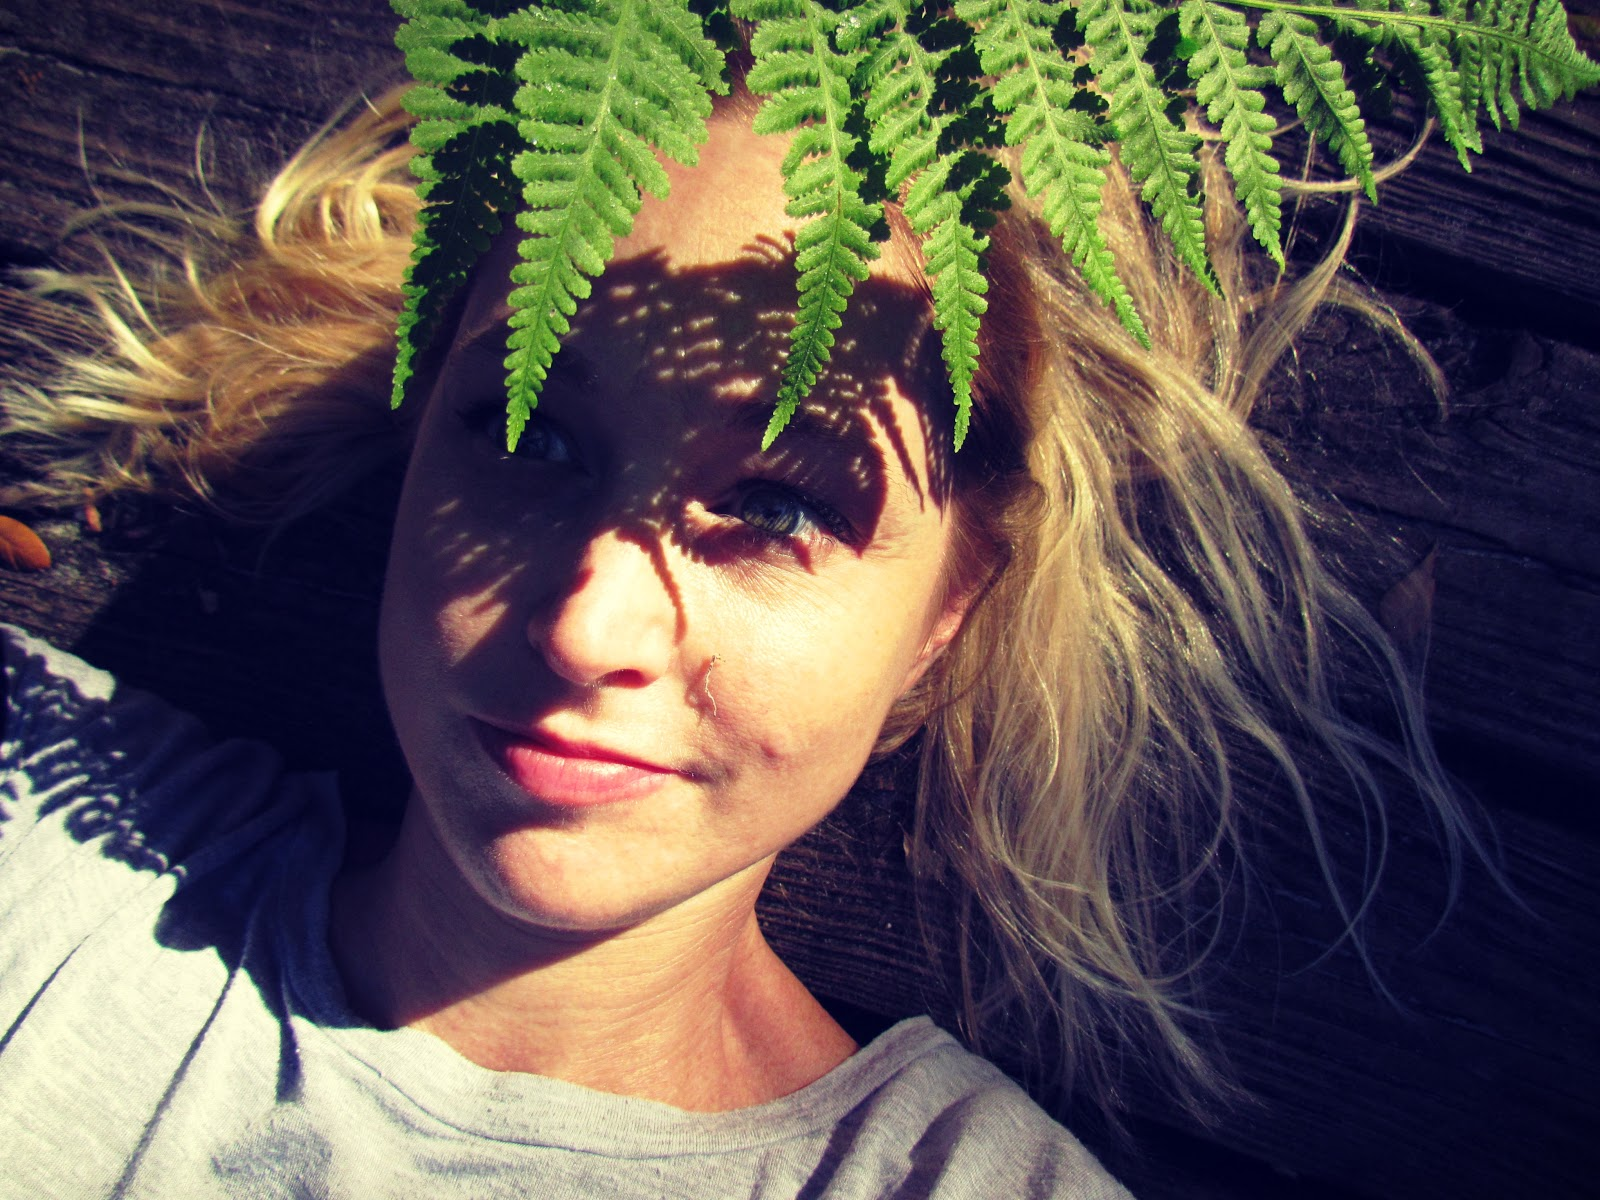 Blonde Woman Earthing on a Wooden Boardwalk in Nature With a Fern Leaf Headdress While Hiking